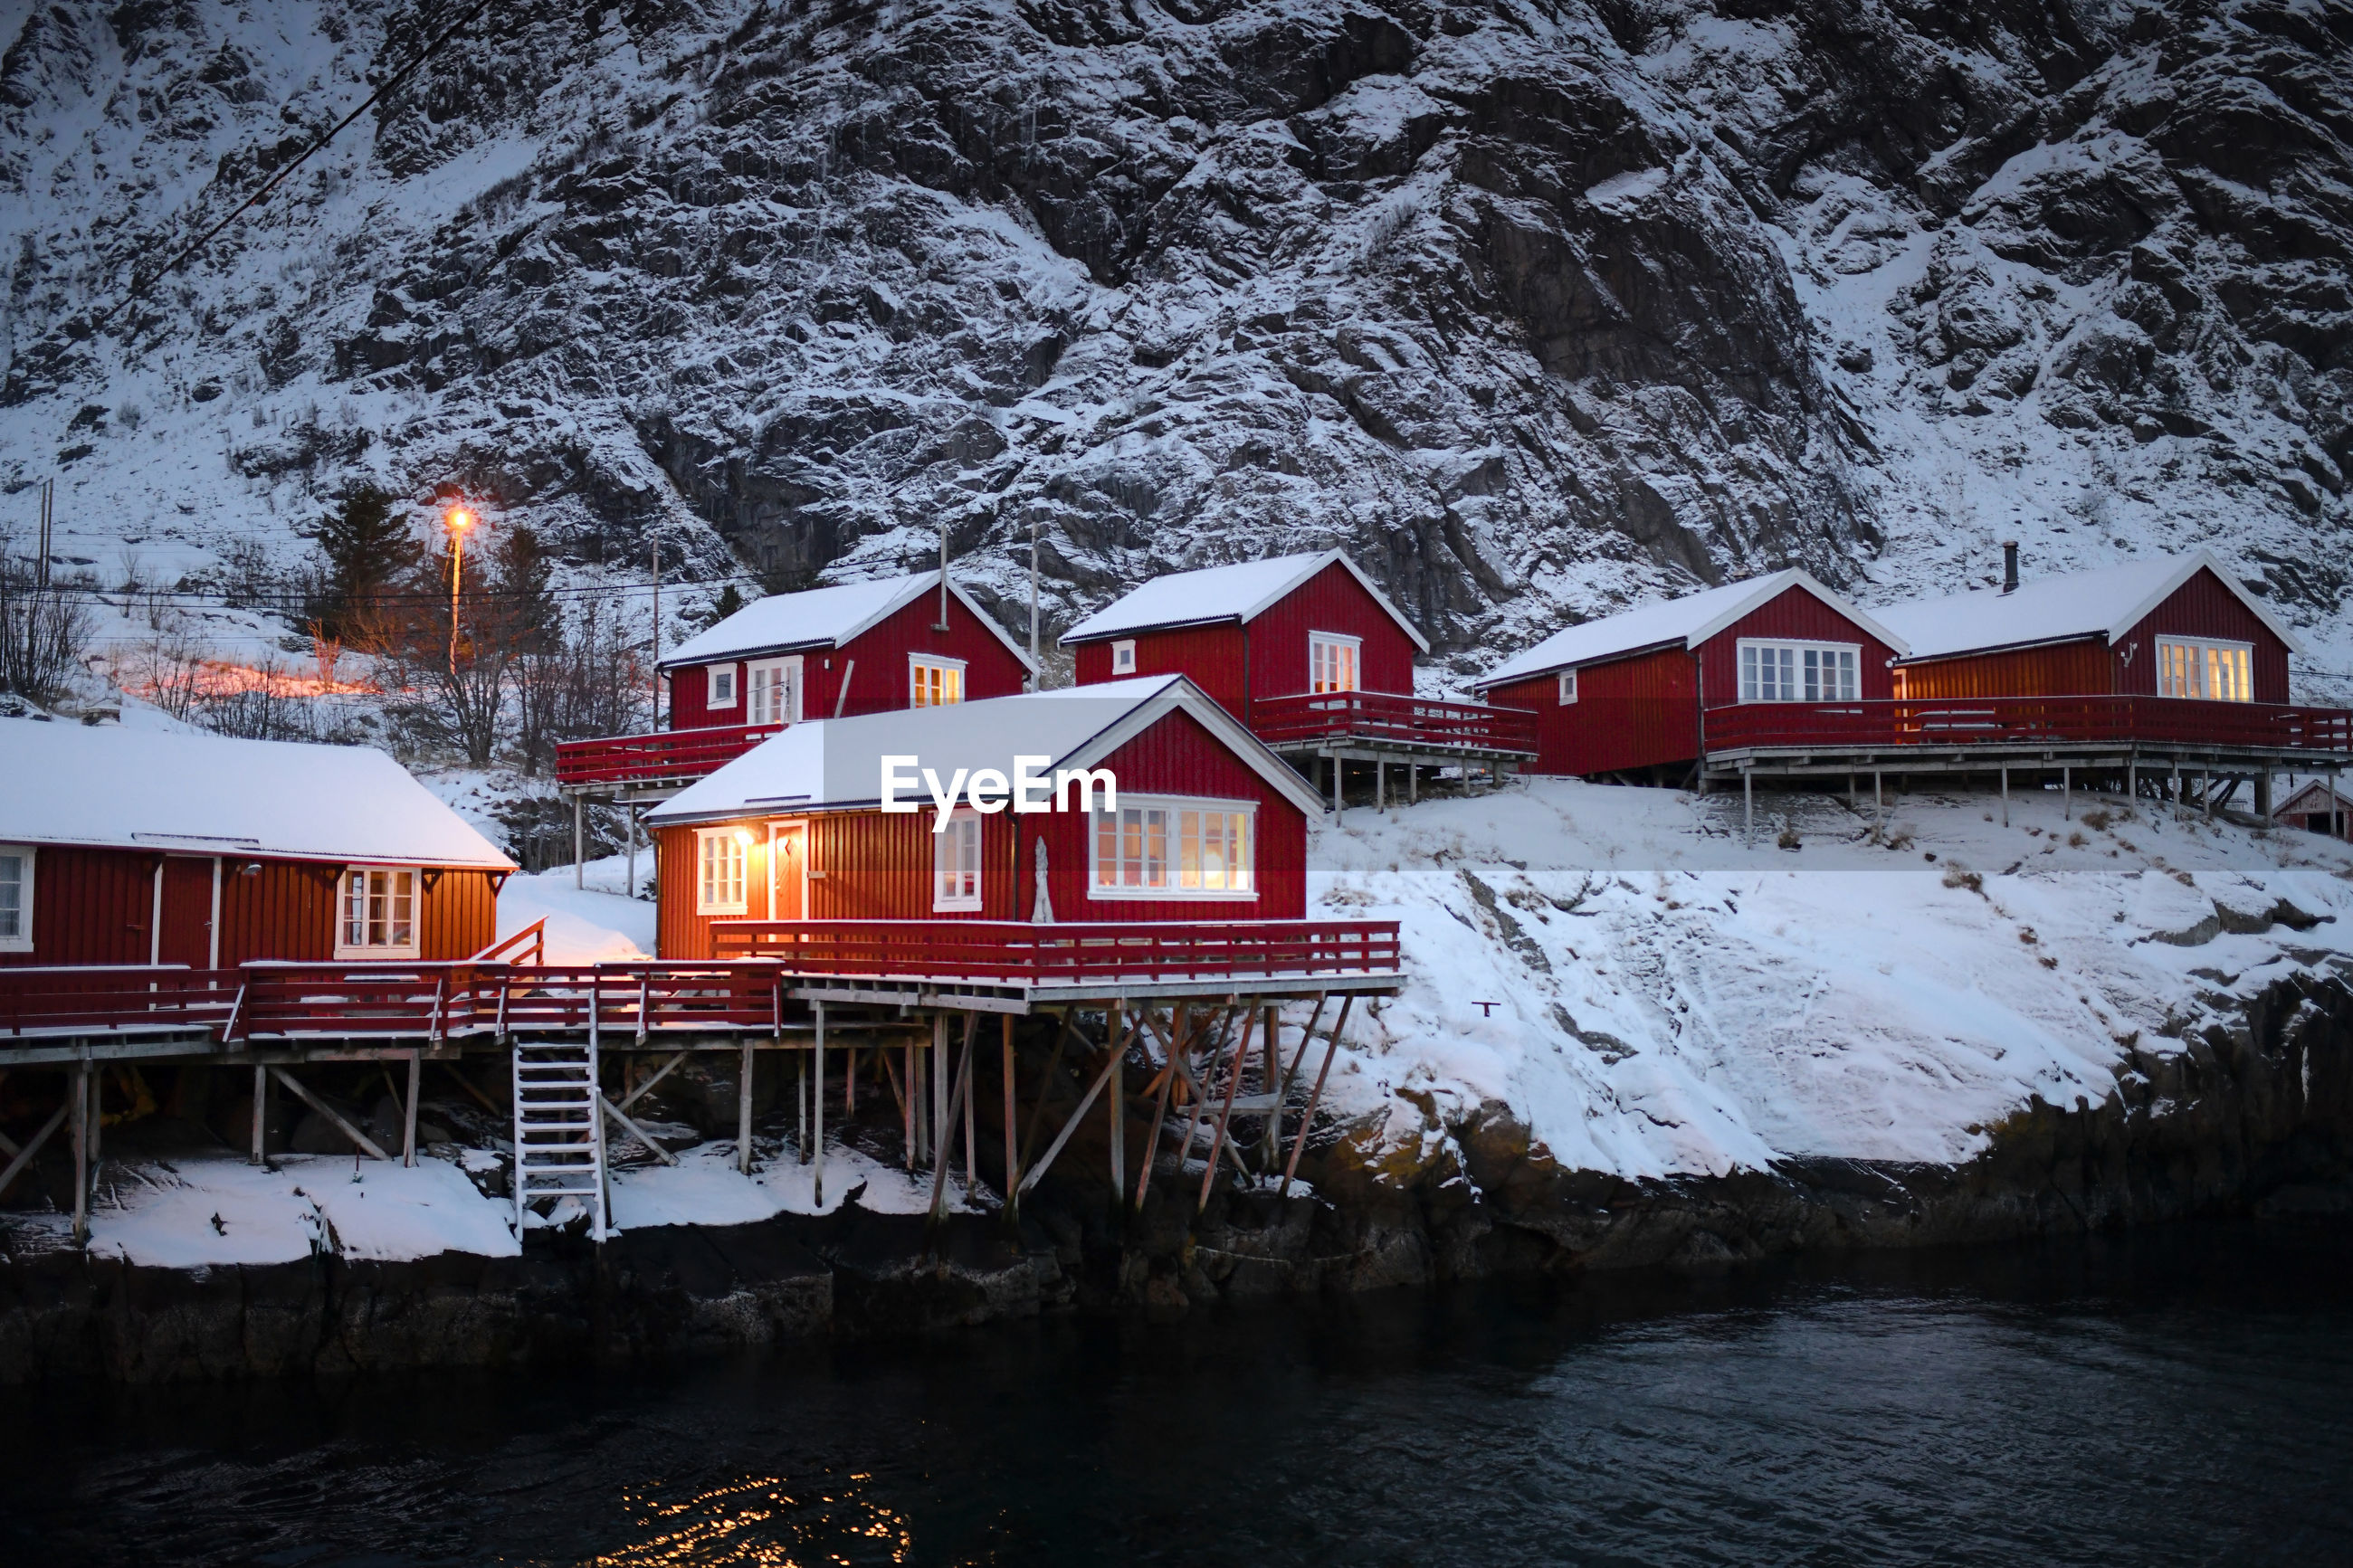 HOUSES BY FROZEN LAKE BY HOUSE DURING WINTER